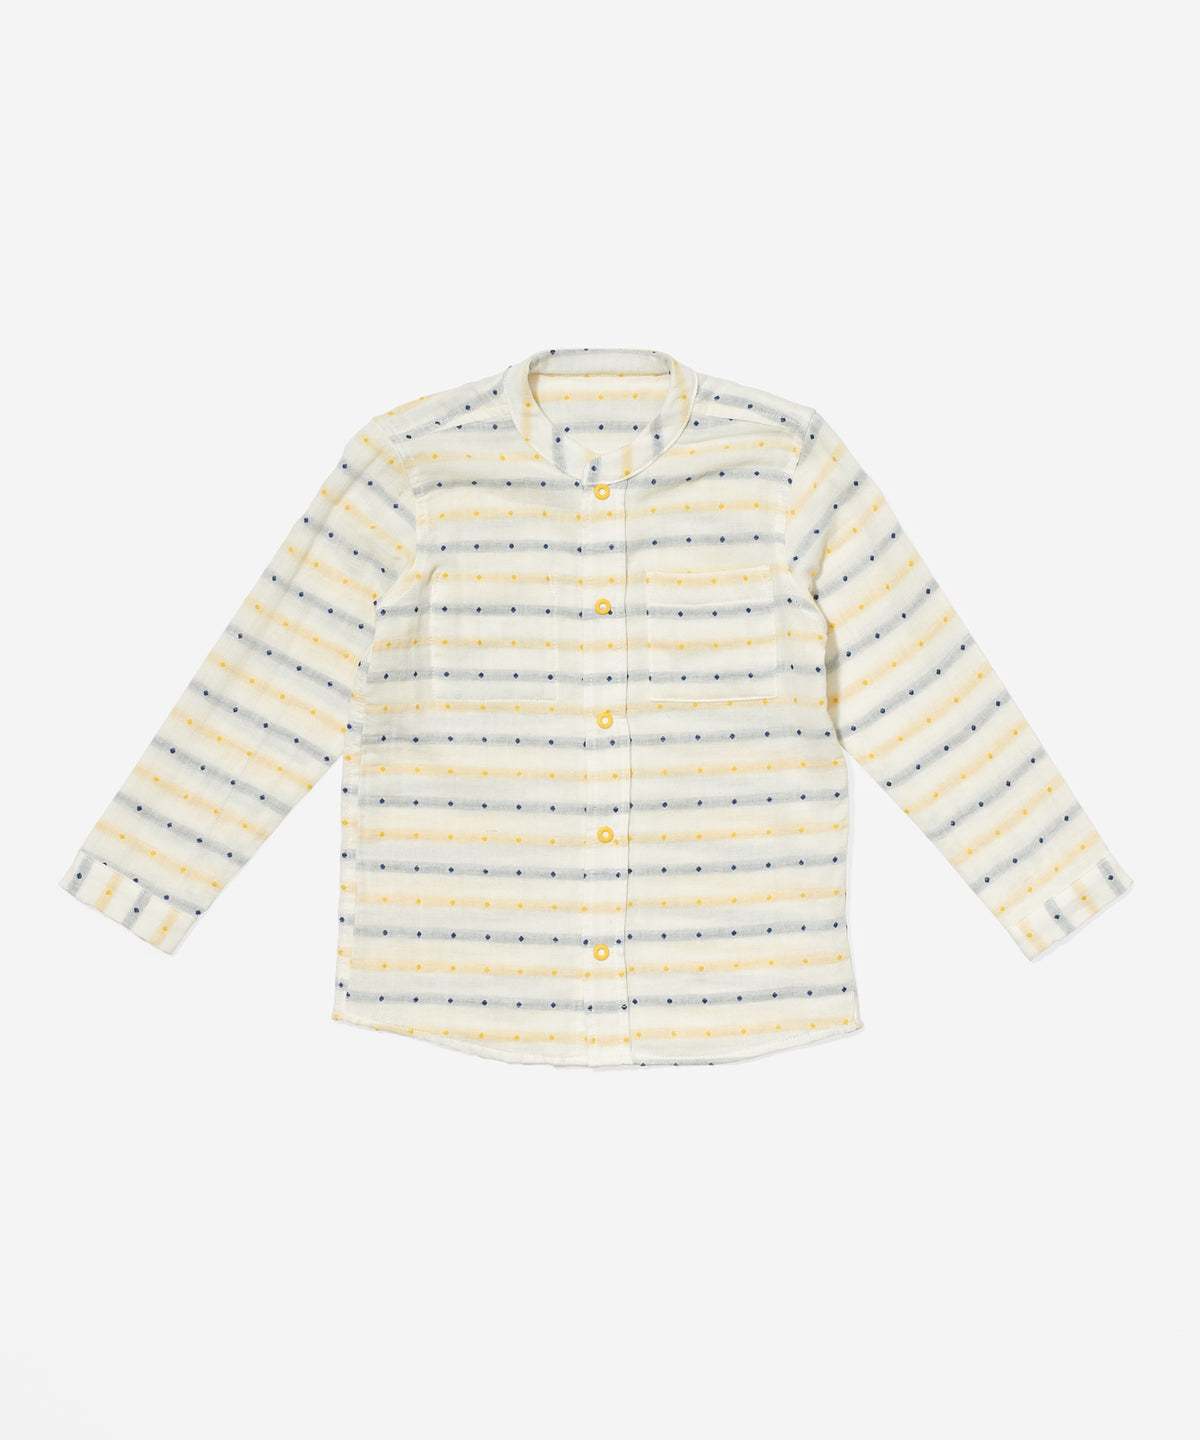 Jack Lee Shirt, Yellow Stripe